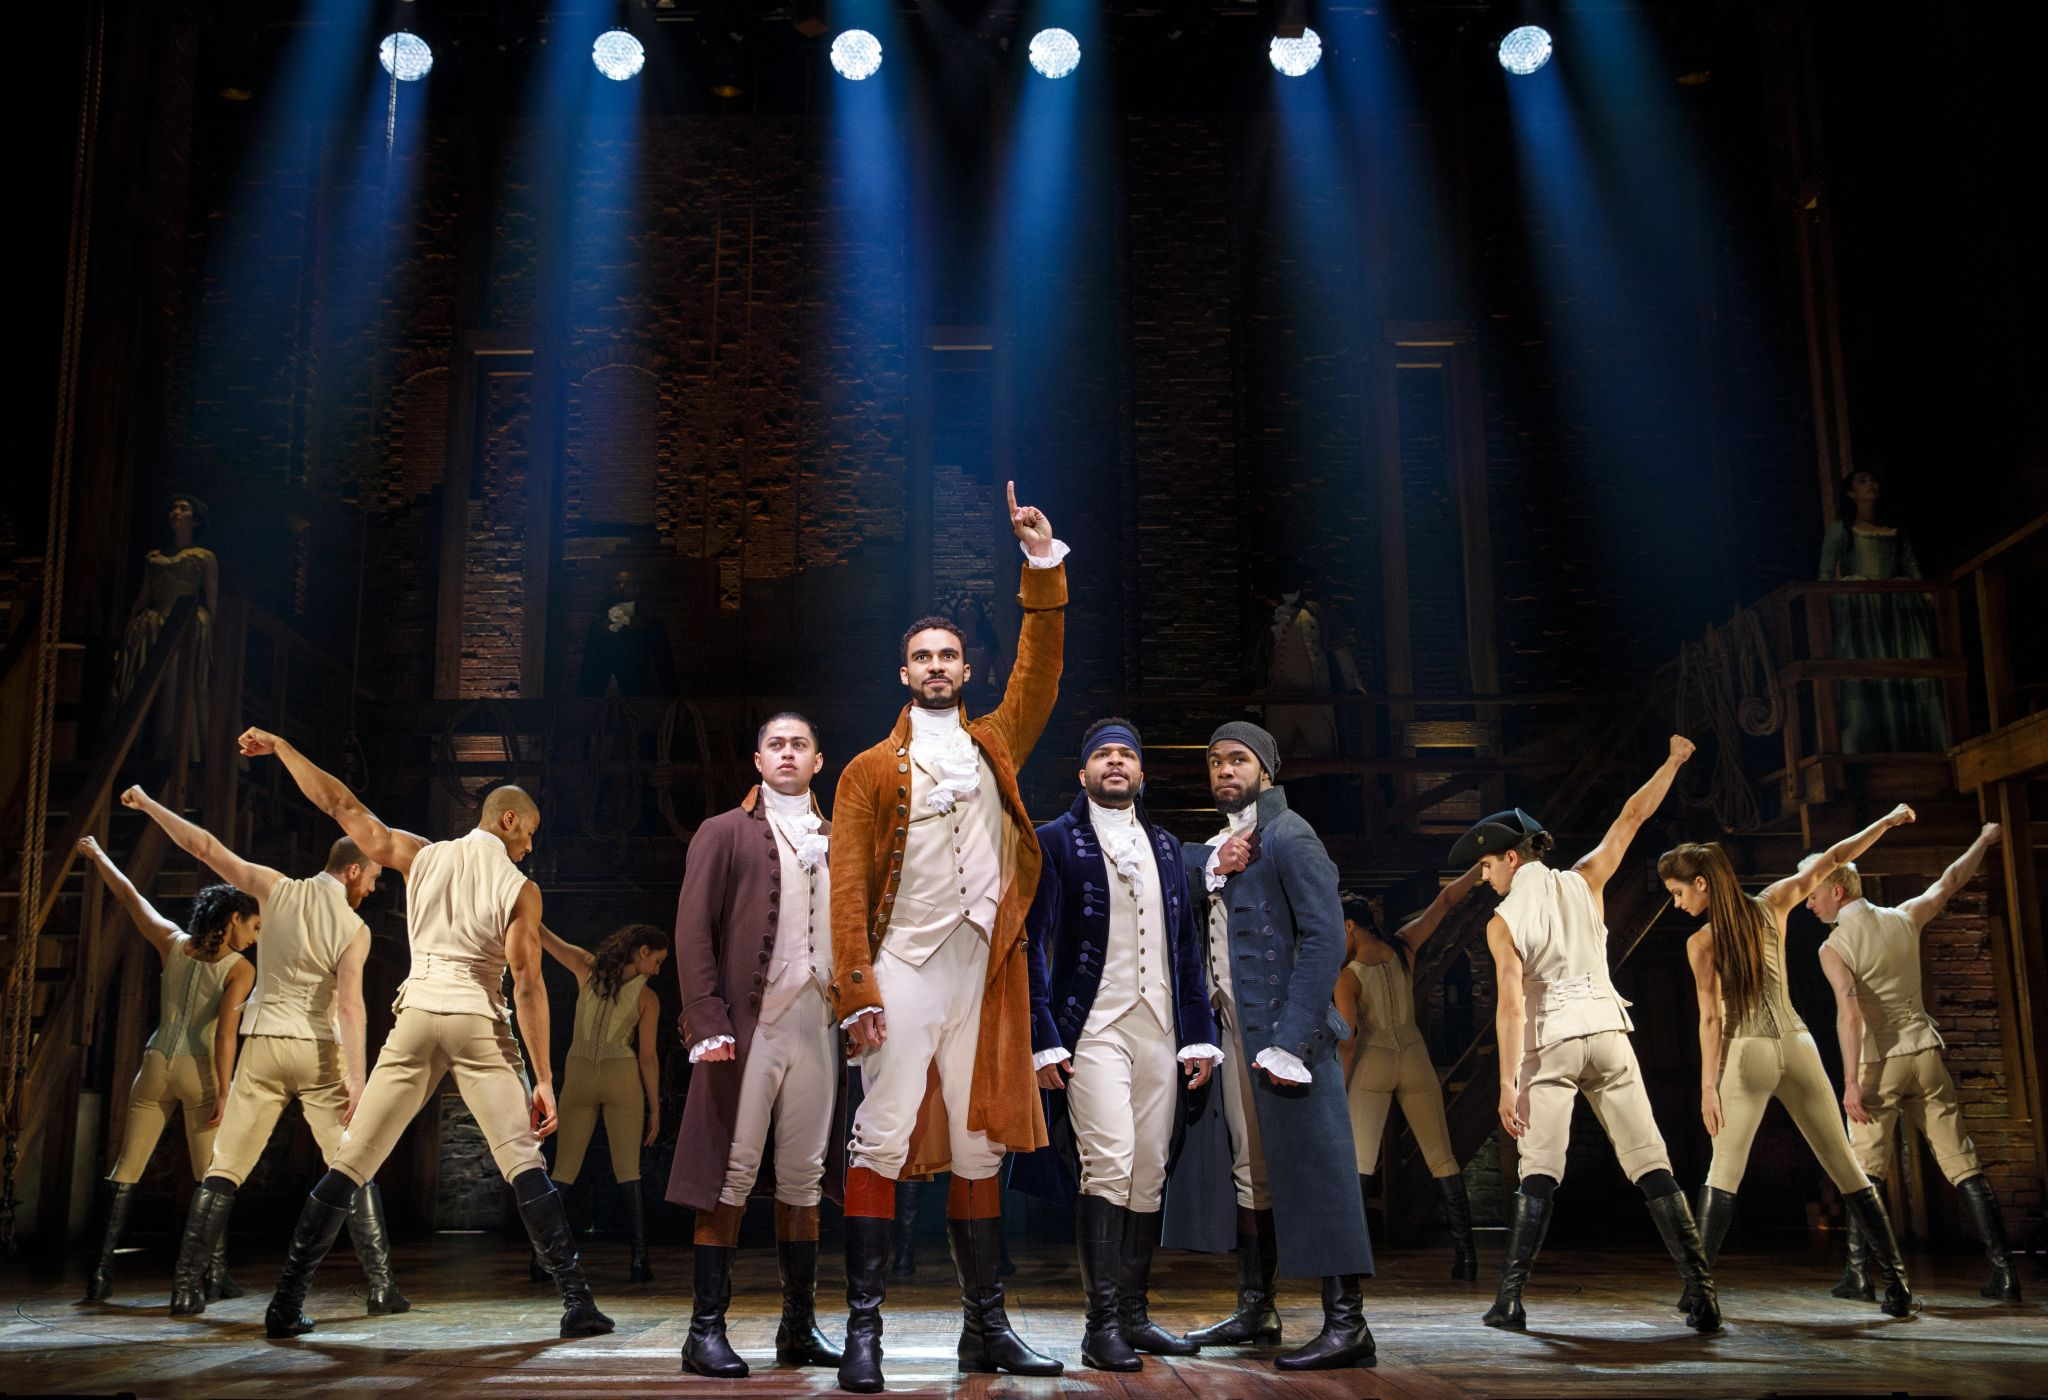 Hamilton returns to Houston's Hobby Center. Tickets on sale this week.